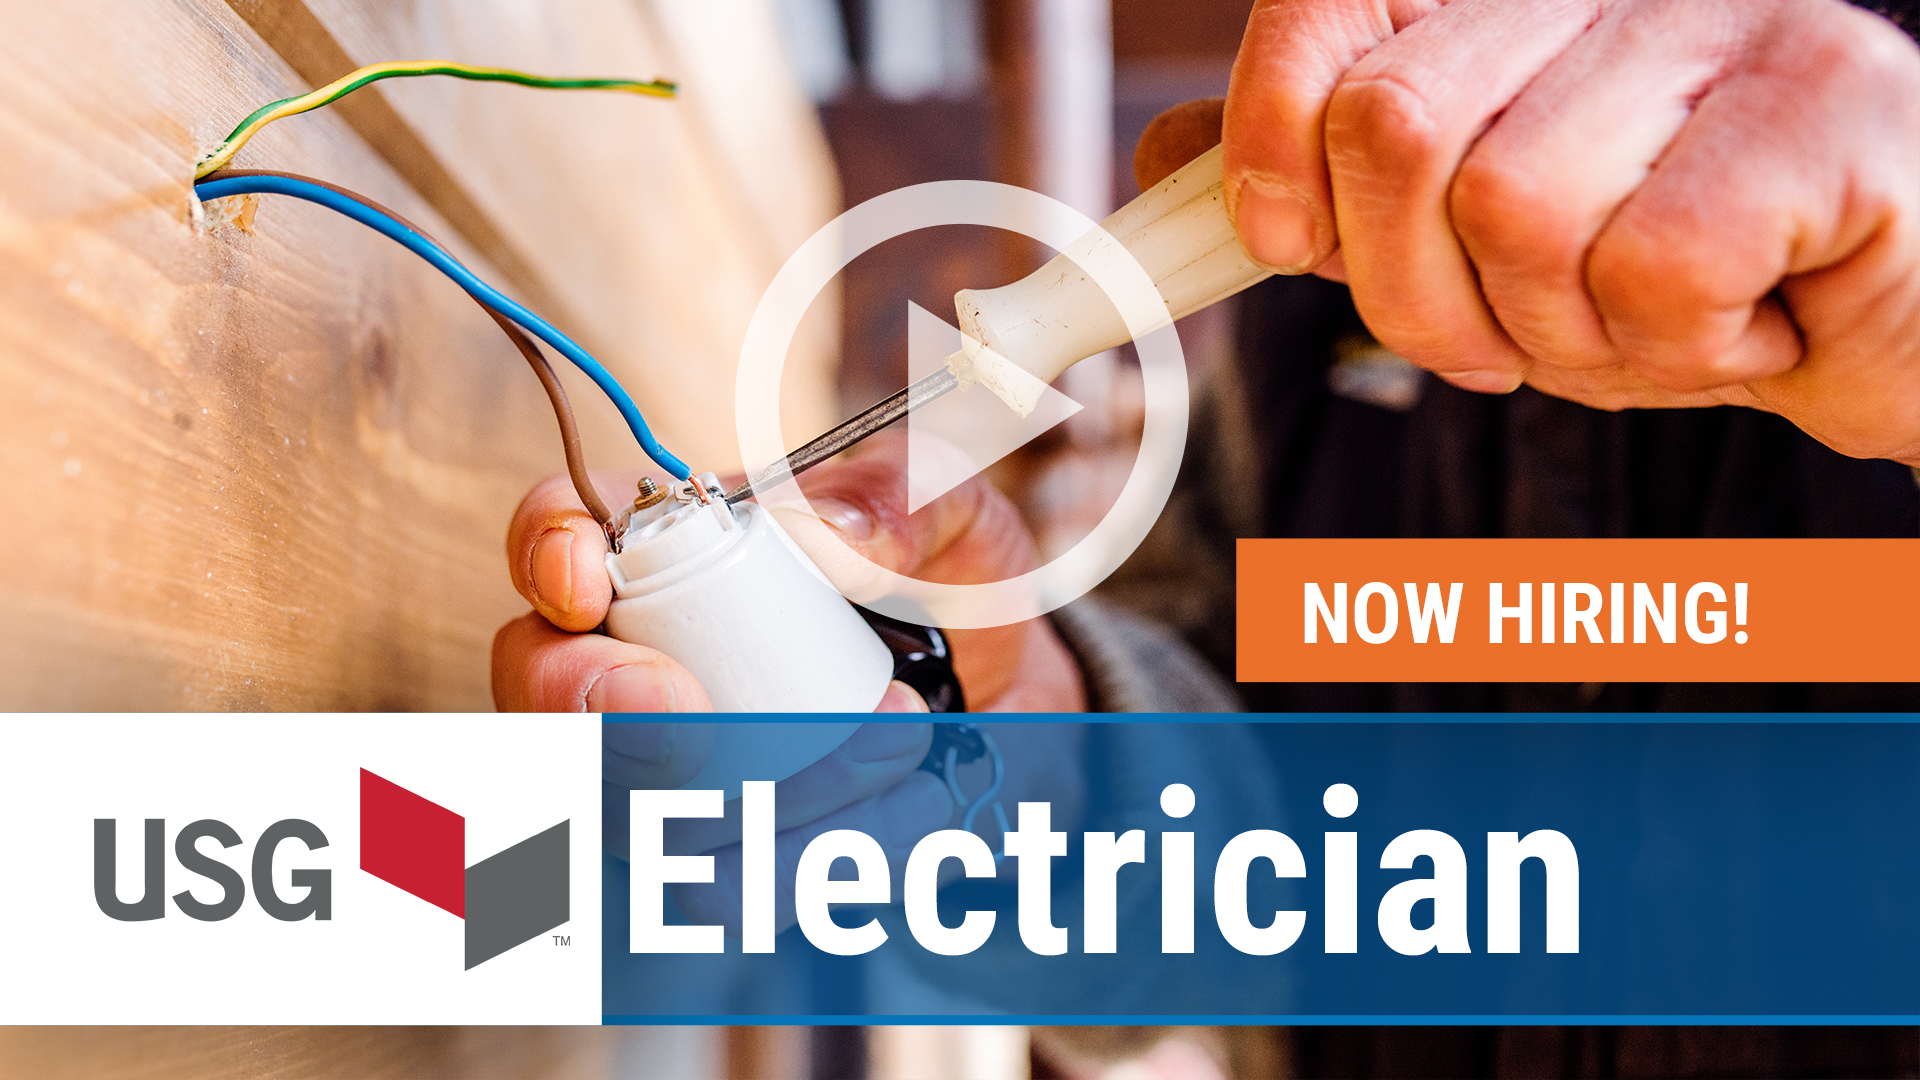 Watch our careers video for available job opening Electrician in Baltimore, MD